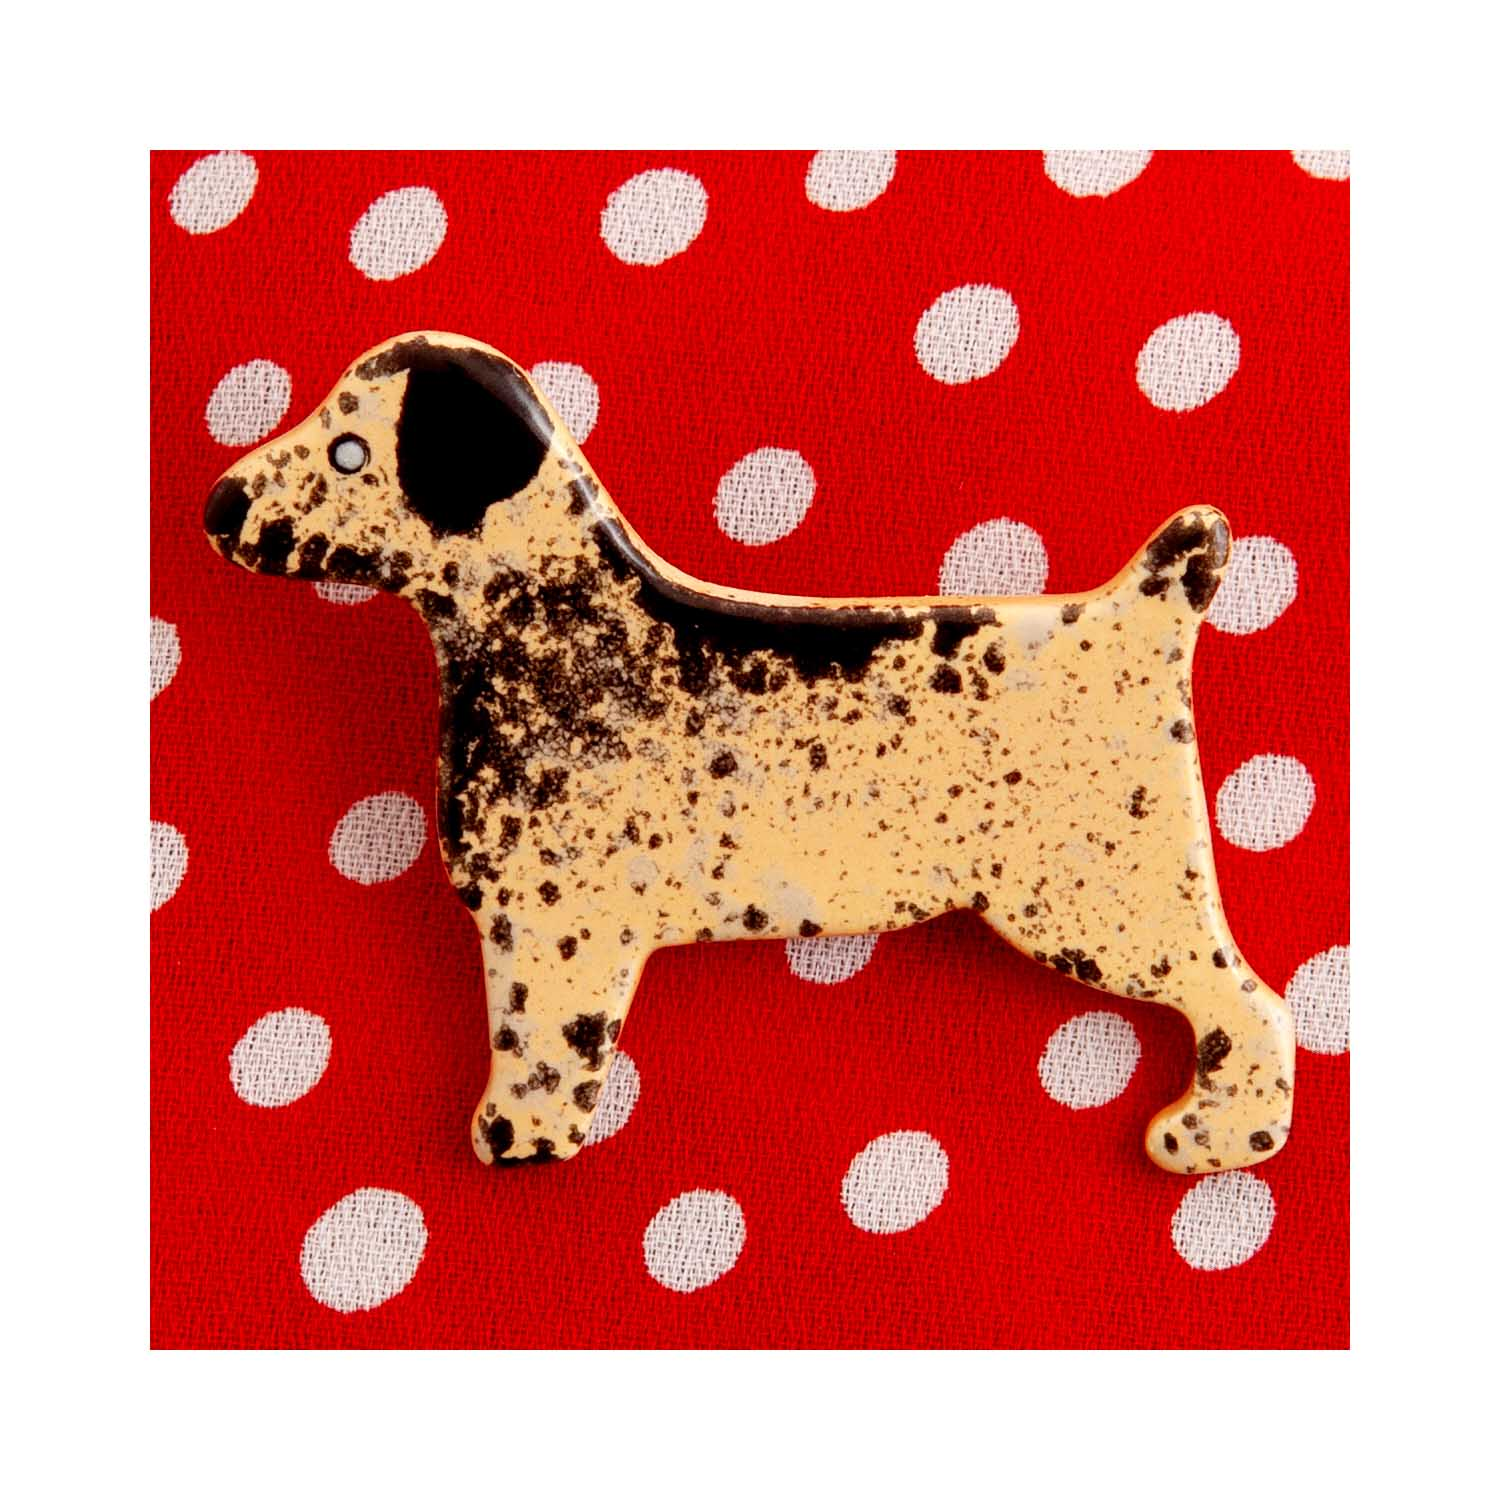 Dog Lover Gifts available at Dog Krazy Gifts – Ceramic Border Terrier Brooch by Mary Goldberg of Stockwell Ceramics, Just Part Of Our Collection Of Border Terrier Themed Gifts, Available At www.dogkrazygifts.co.uk